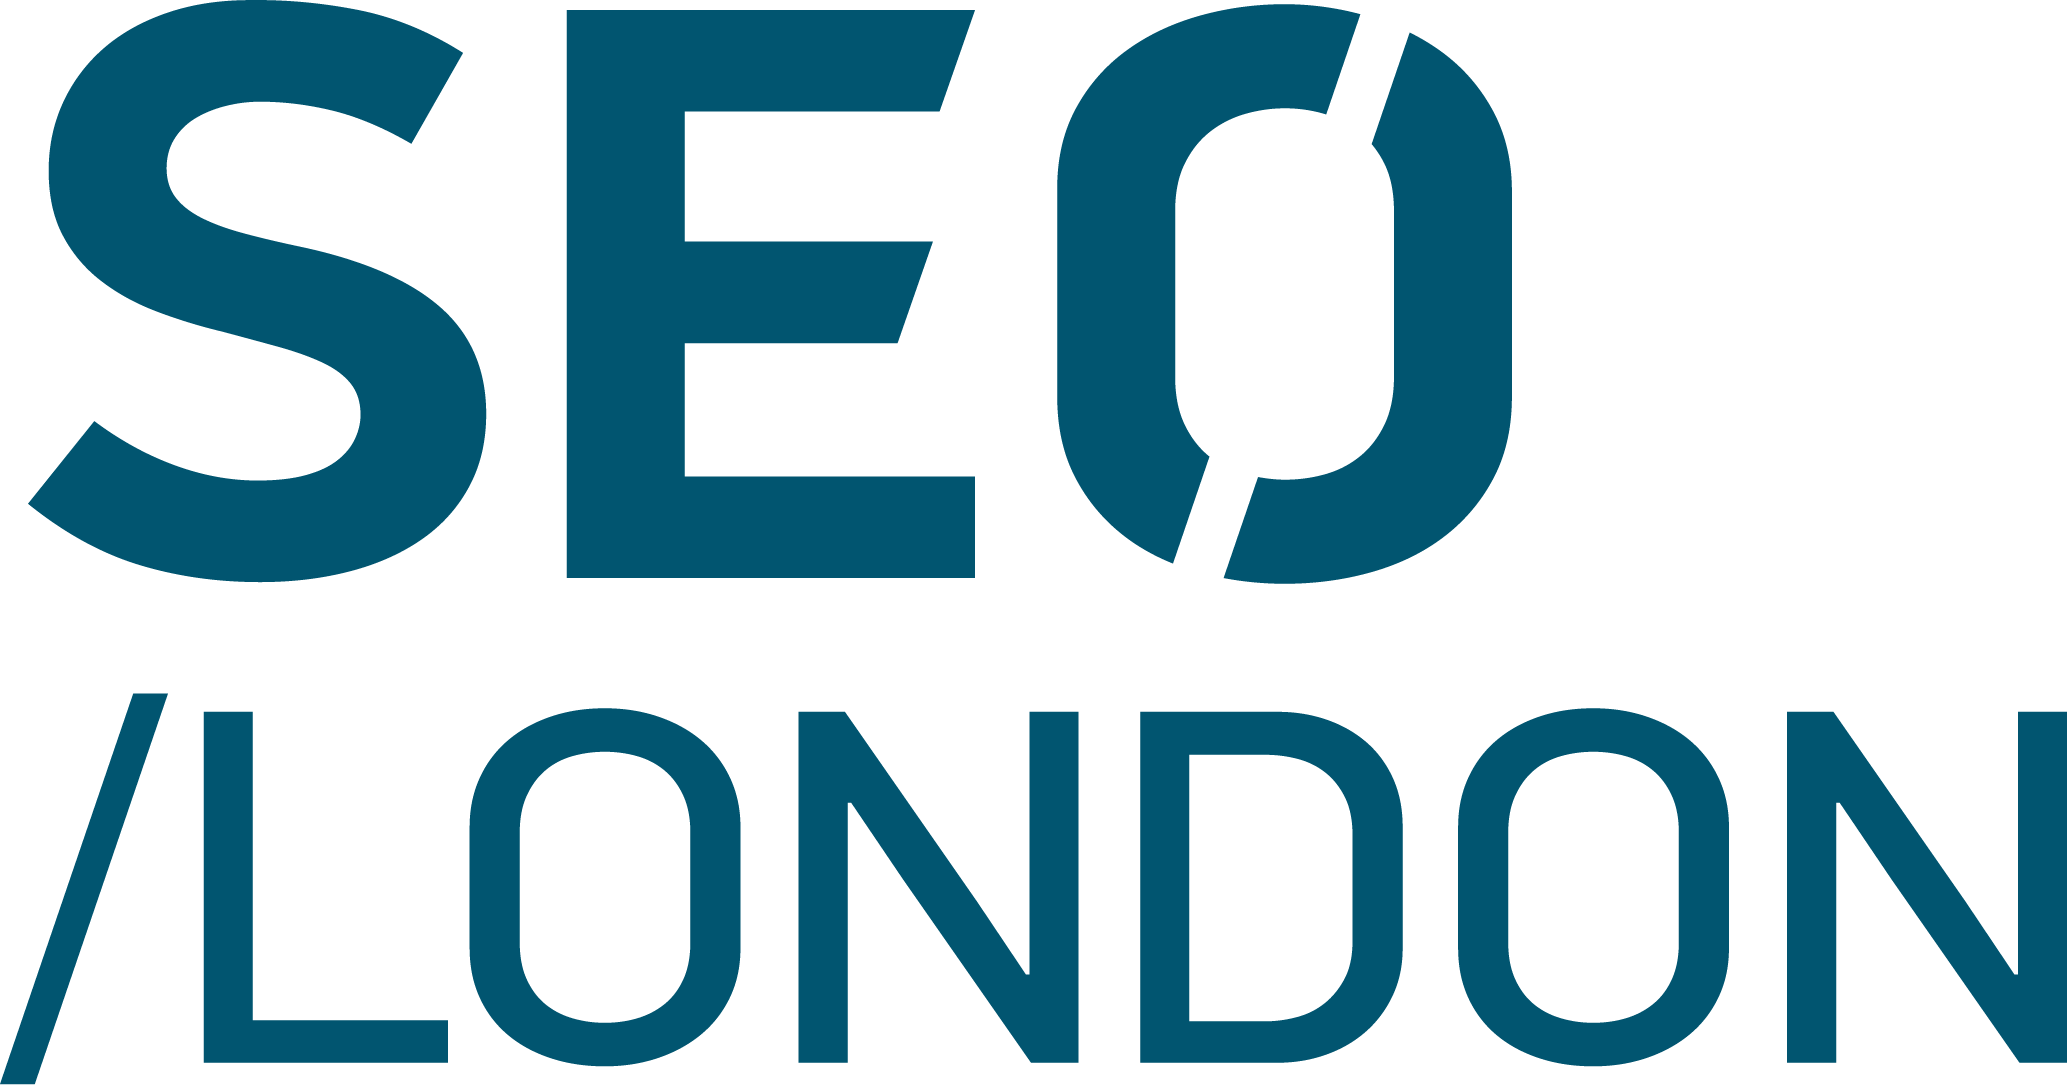 SEO London logo image